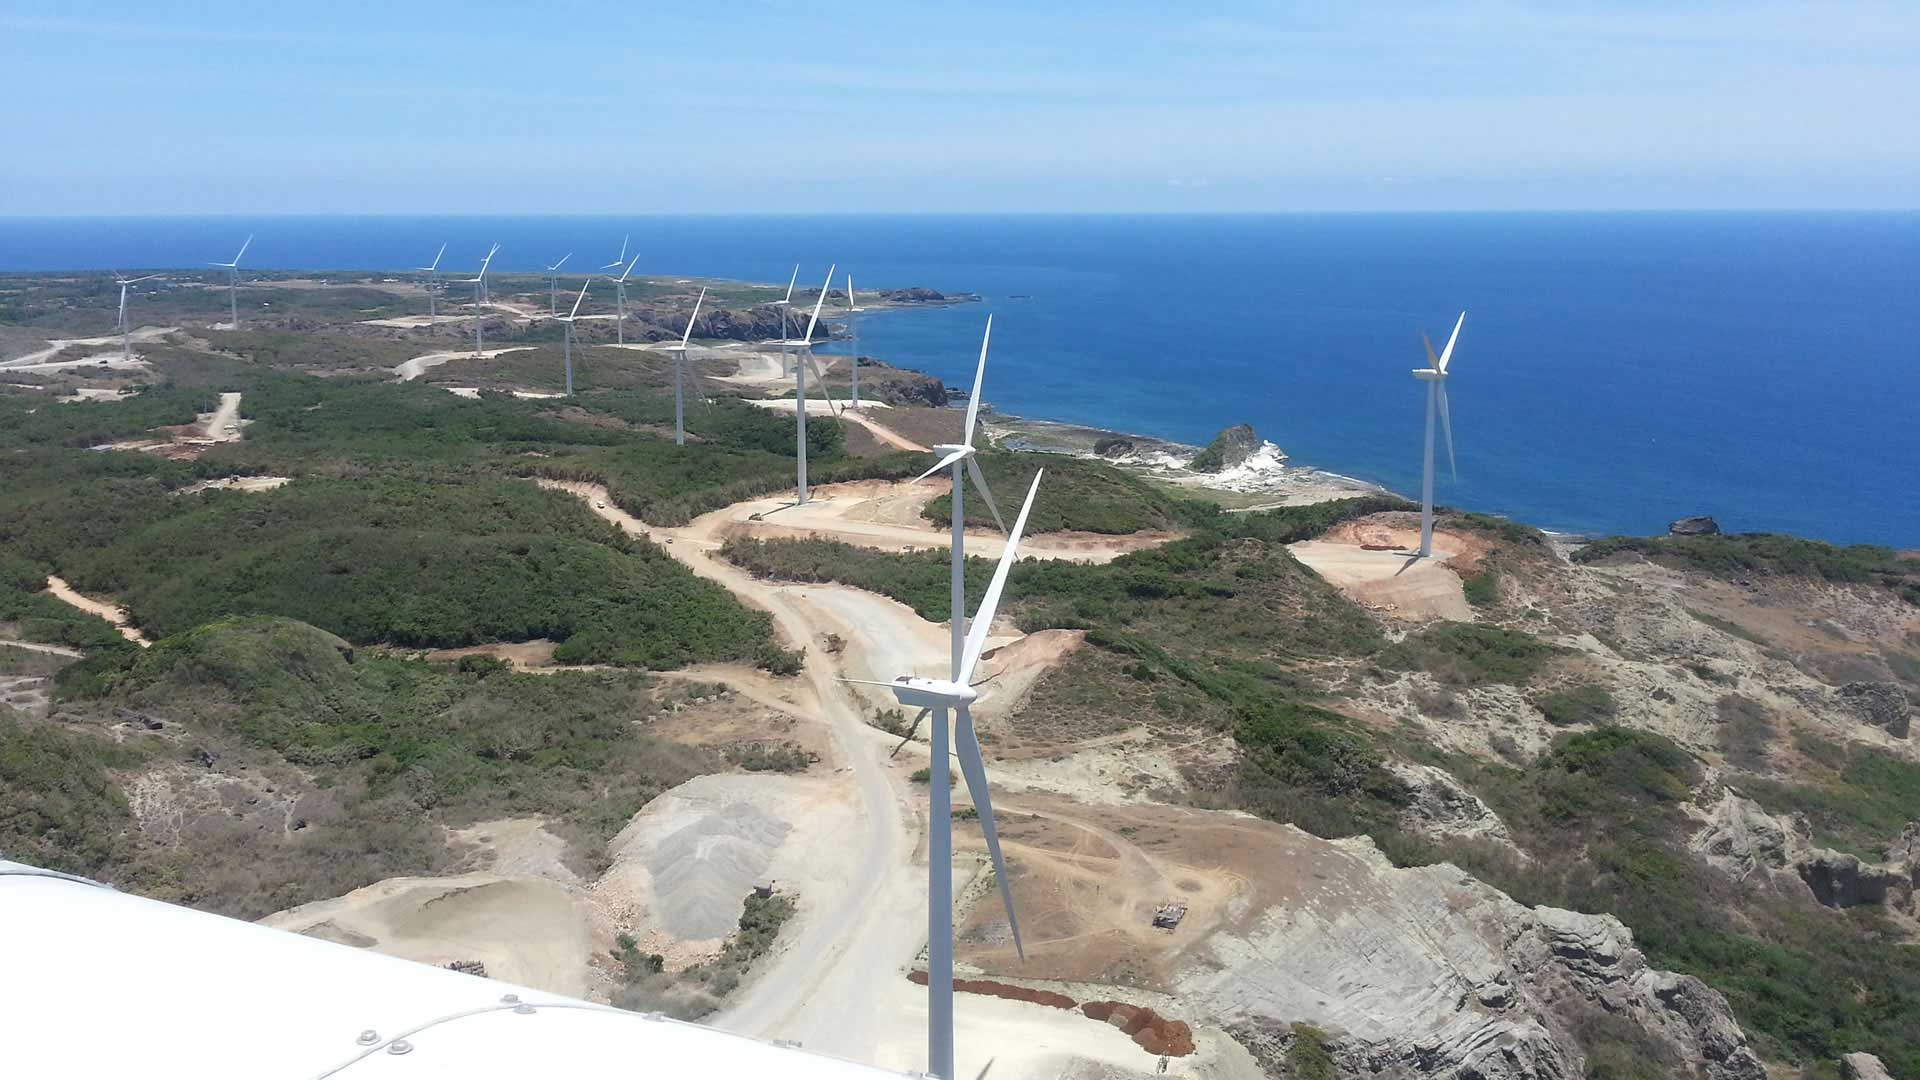 BURGOS I & II WIND FARM